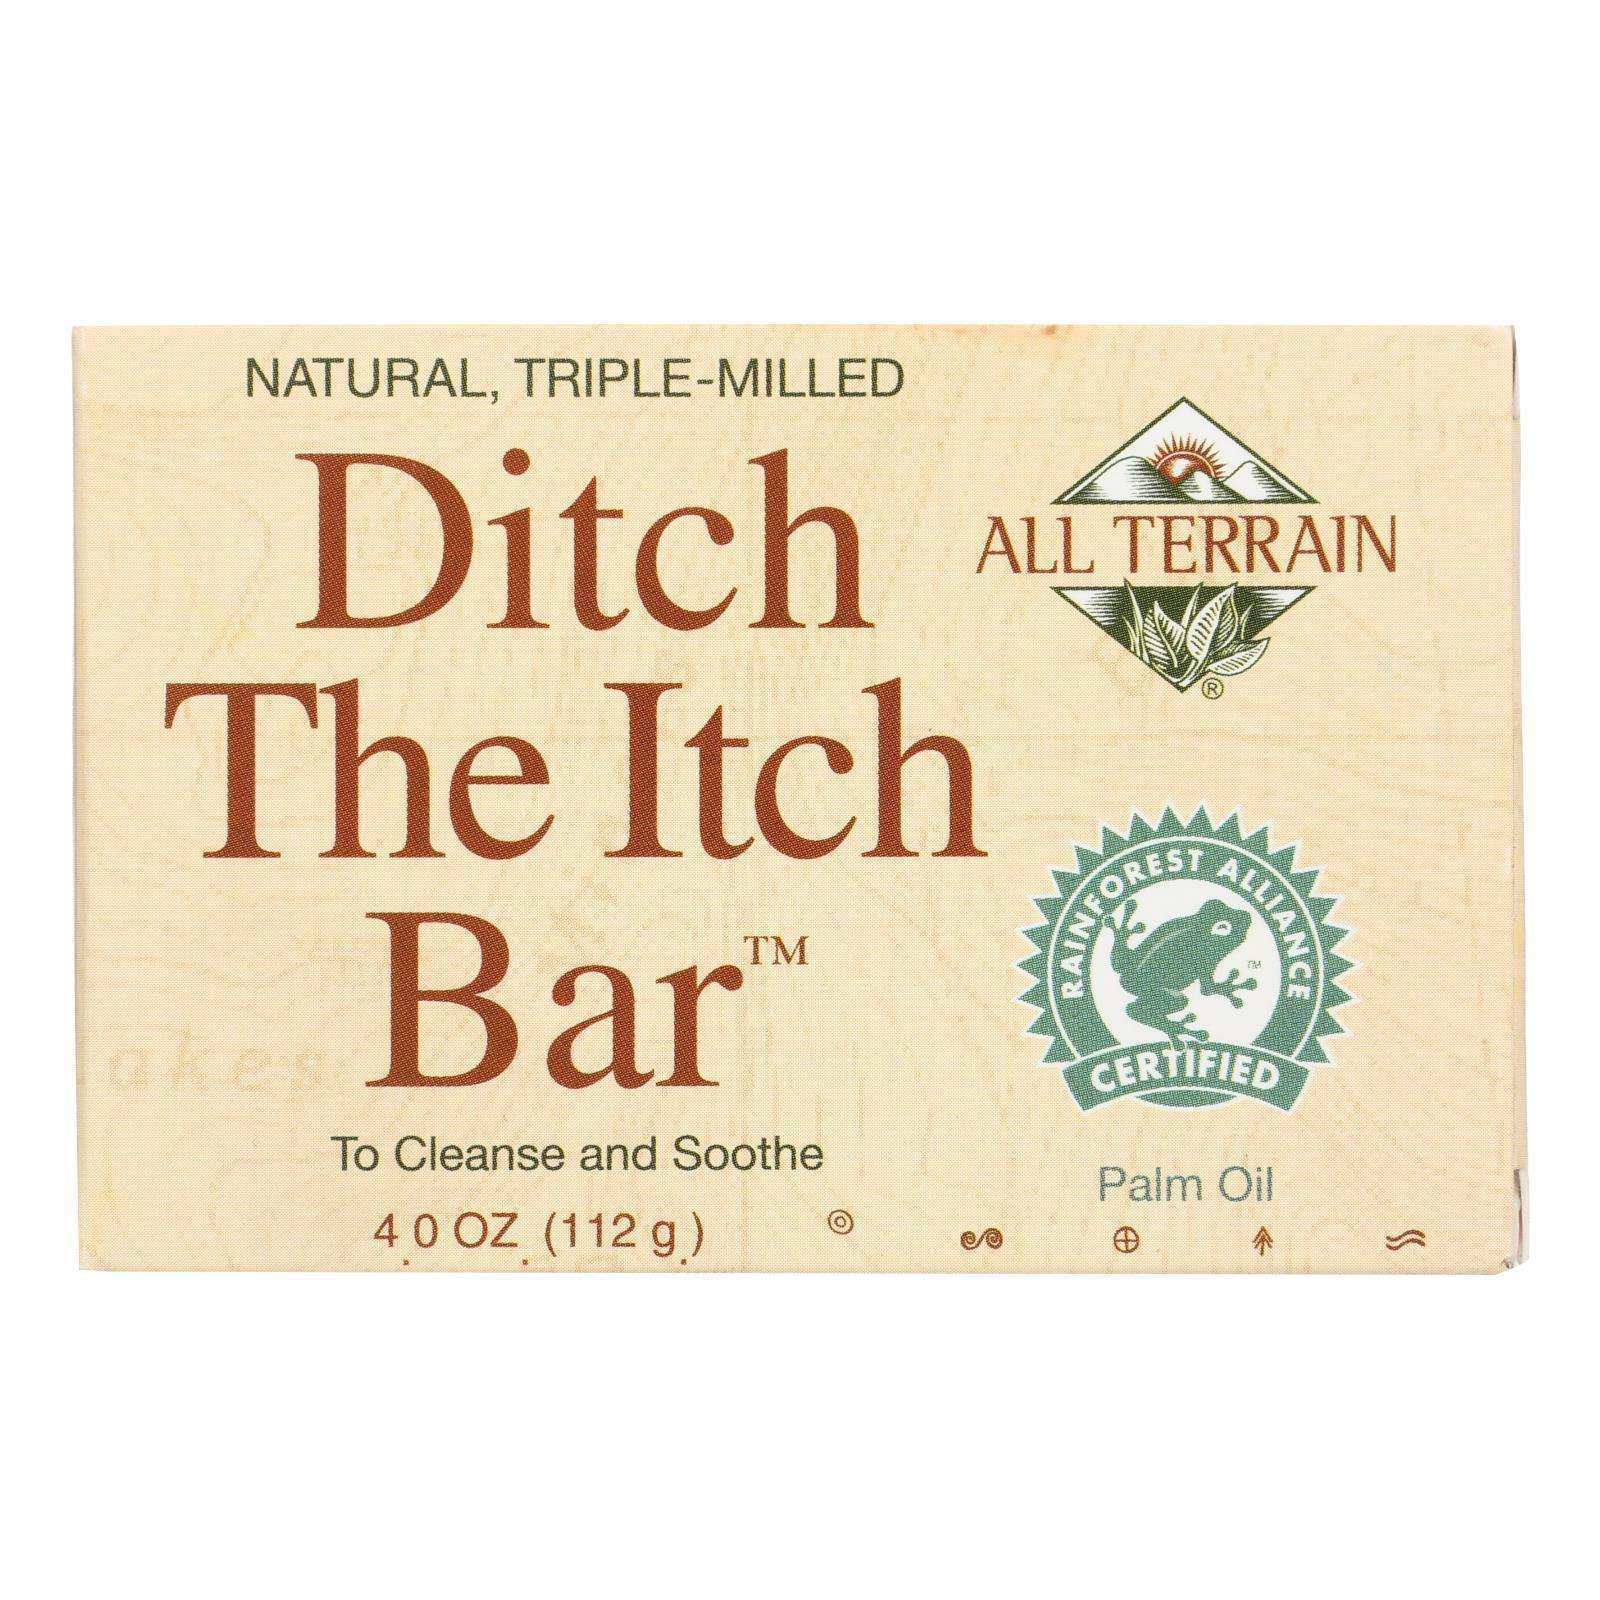 All Terrain - Ditch The Itch Bar - 4 Oz - BeeGreen